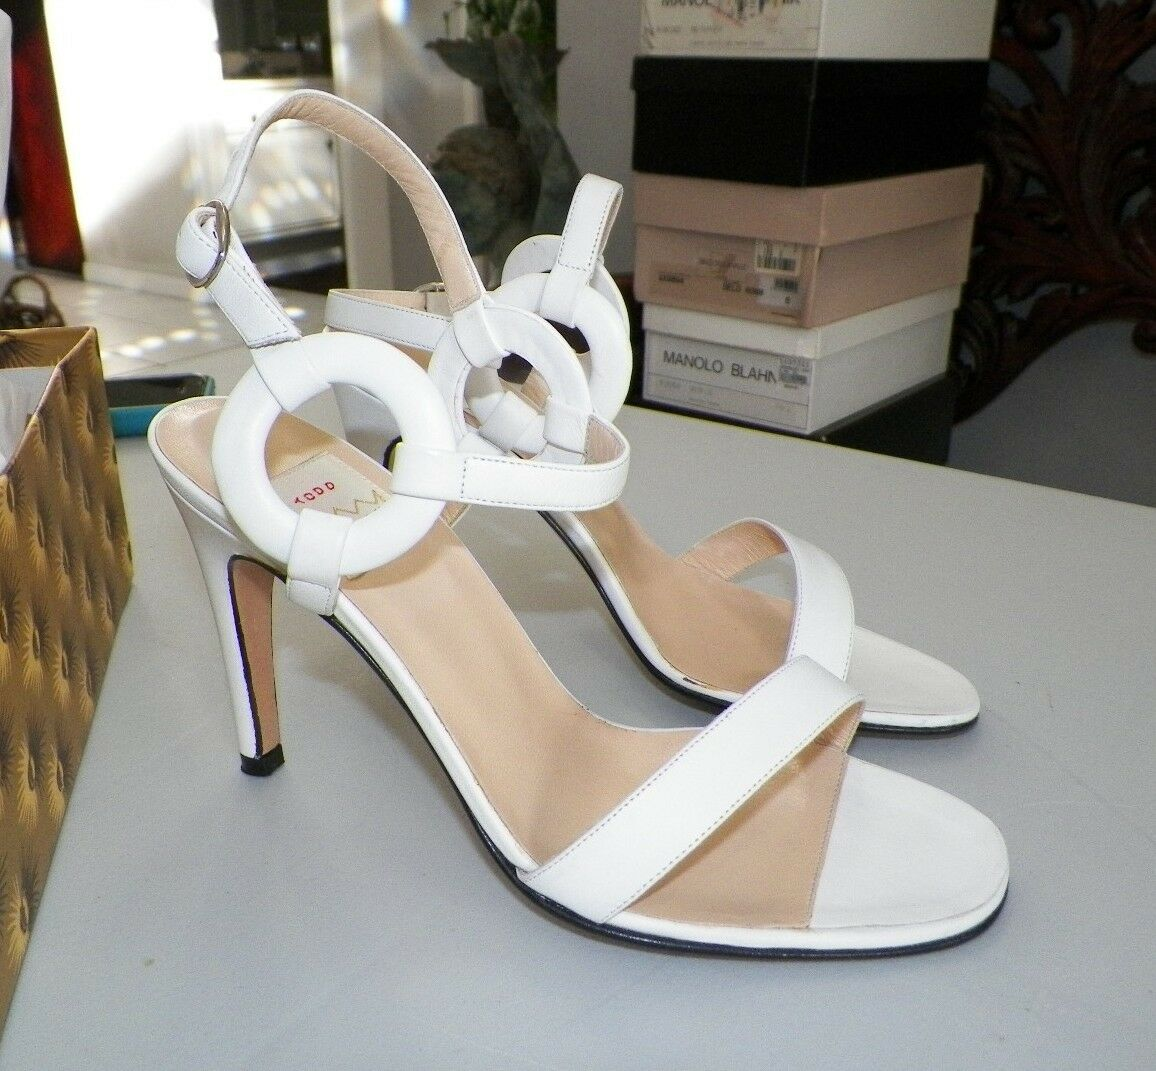 WOMEN'S TODD OLDHAM BY LERRE WHITE LEATHER STRAPPY HEELS SIZE 36 NEVER WORN